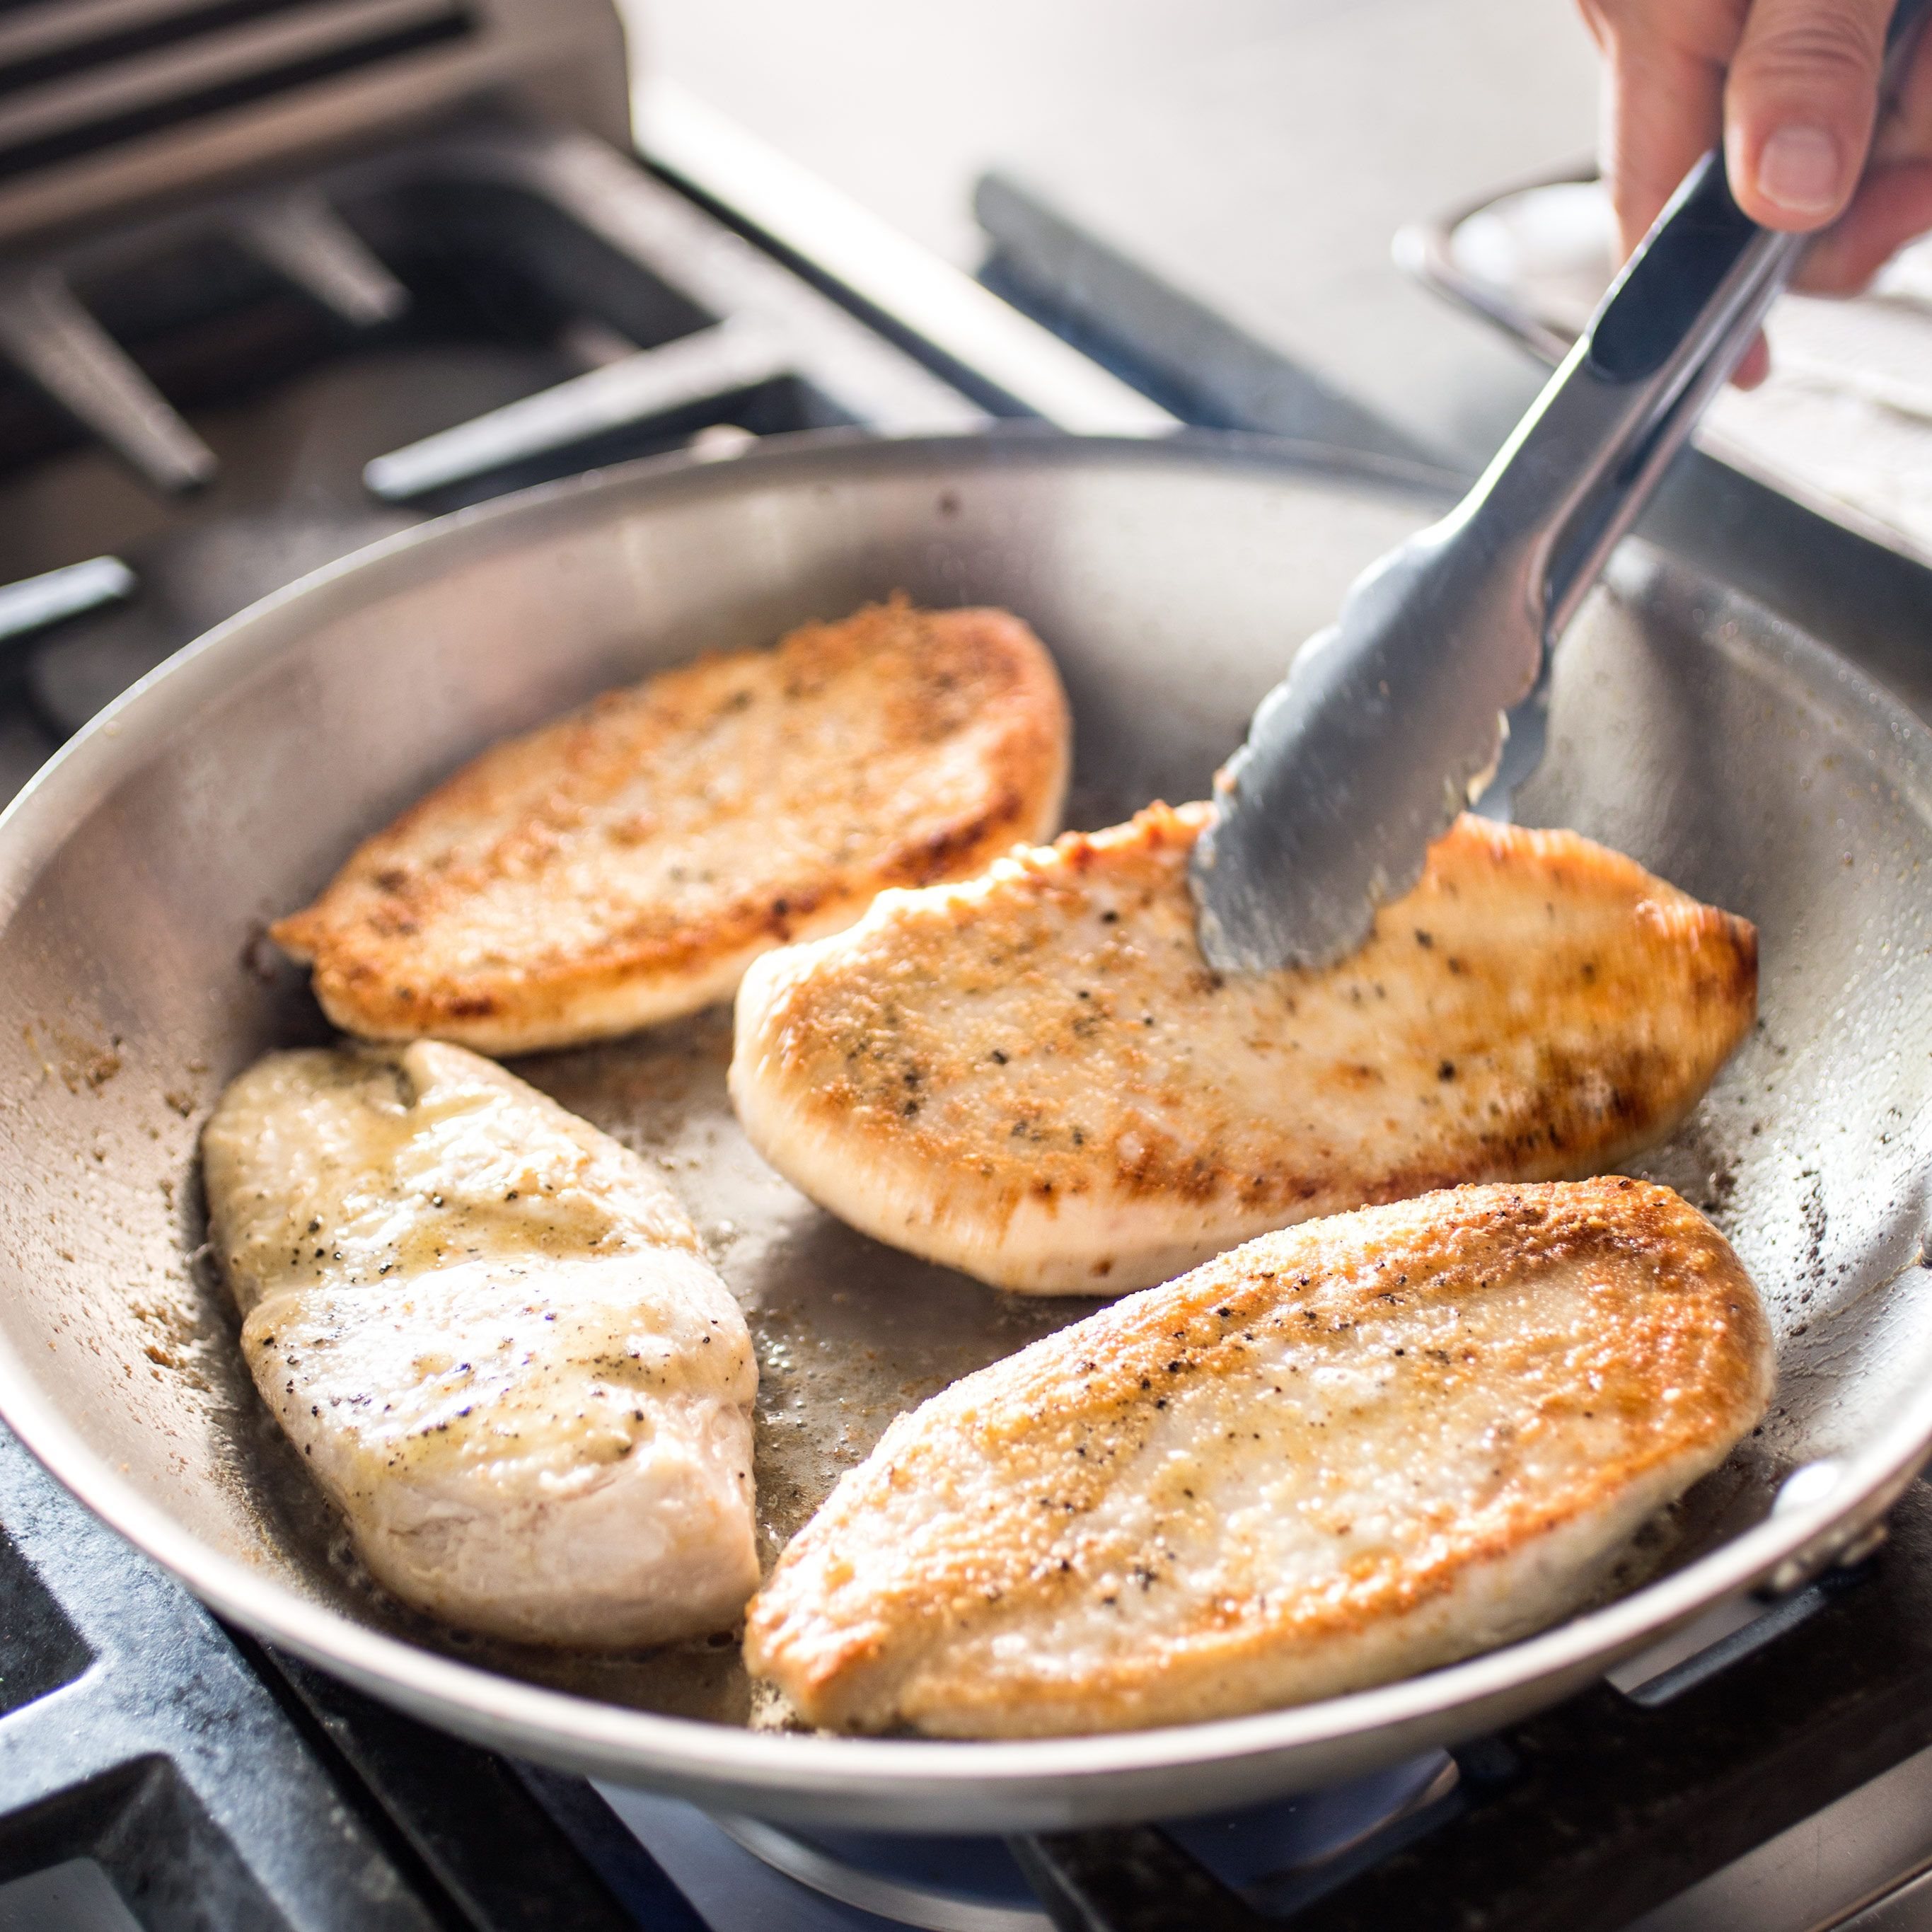 Exposing boneless, skinless chicken breasts to a hot pan often ...